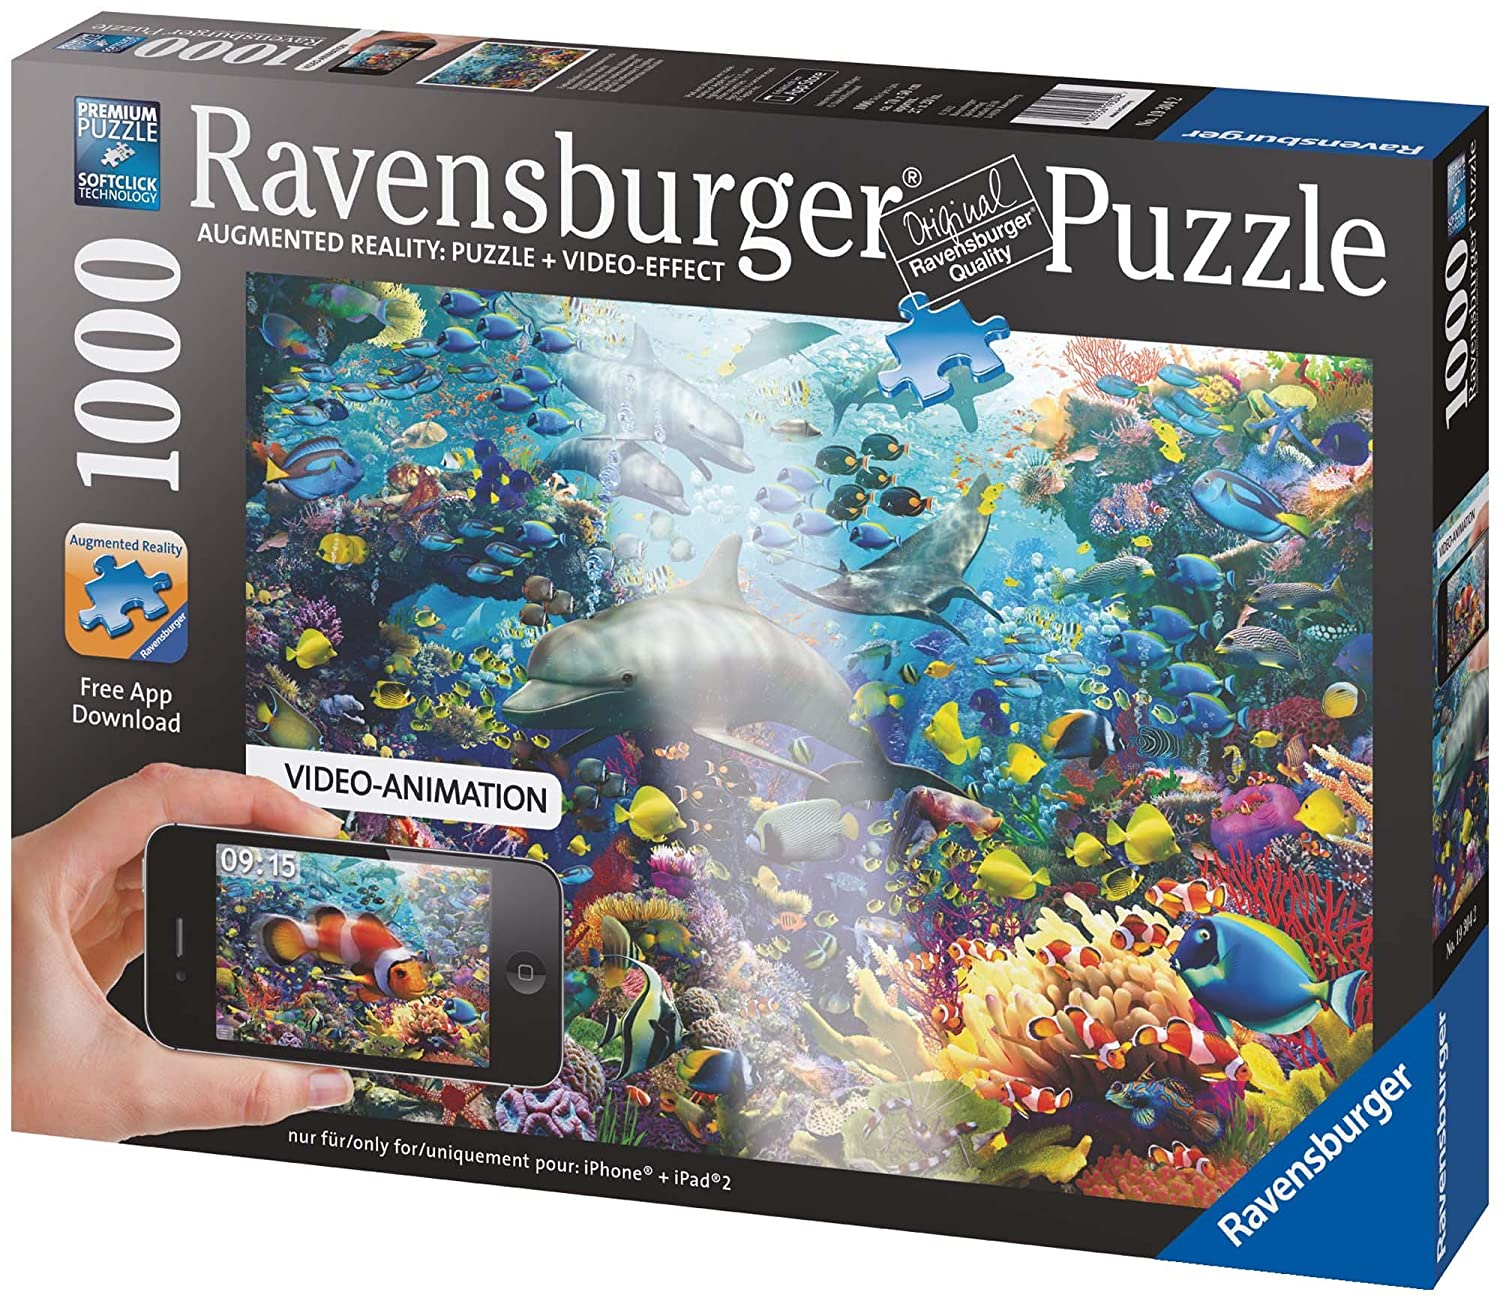 Ravensburger Underwater, 1000-Pieces Augmented Reality Puzzle